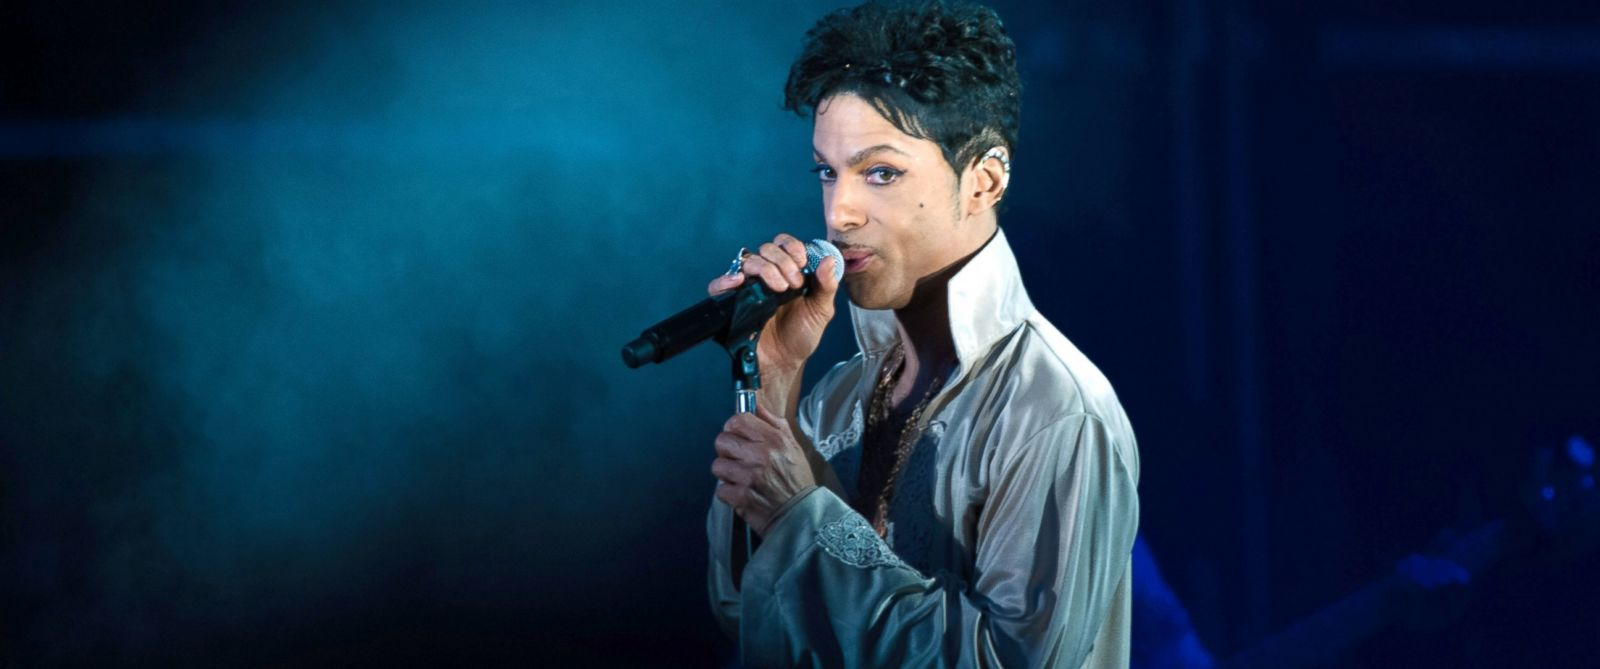 Search Warrant Issued For Prince S Paisley Park Estate